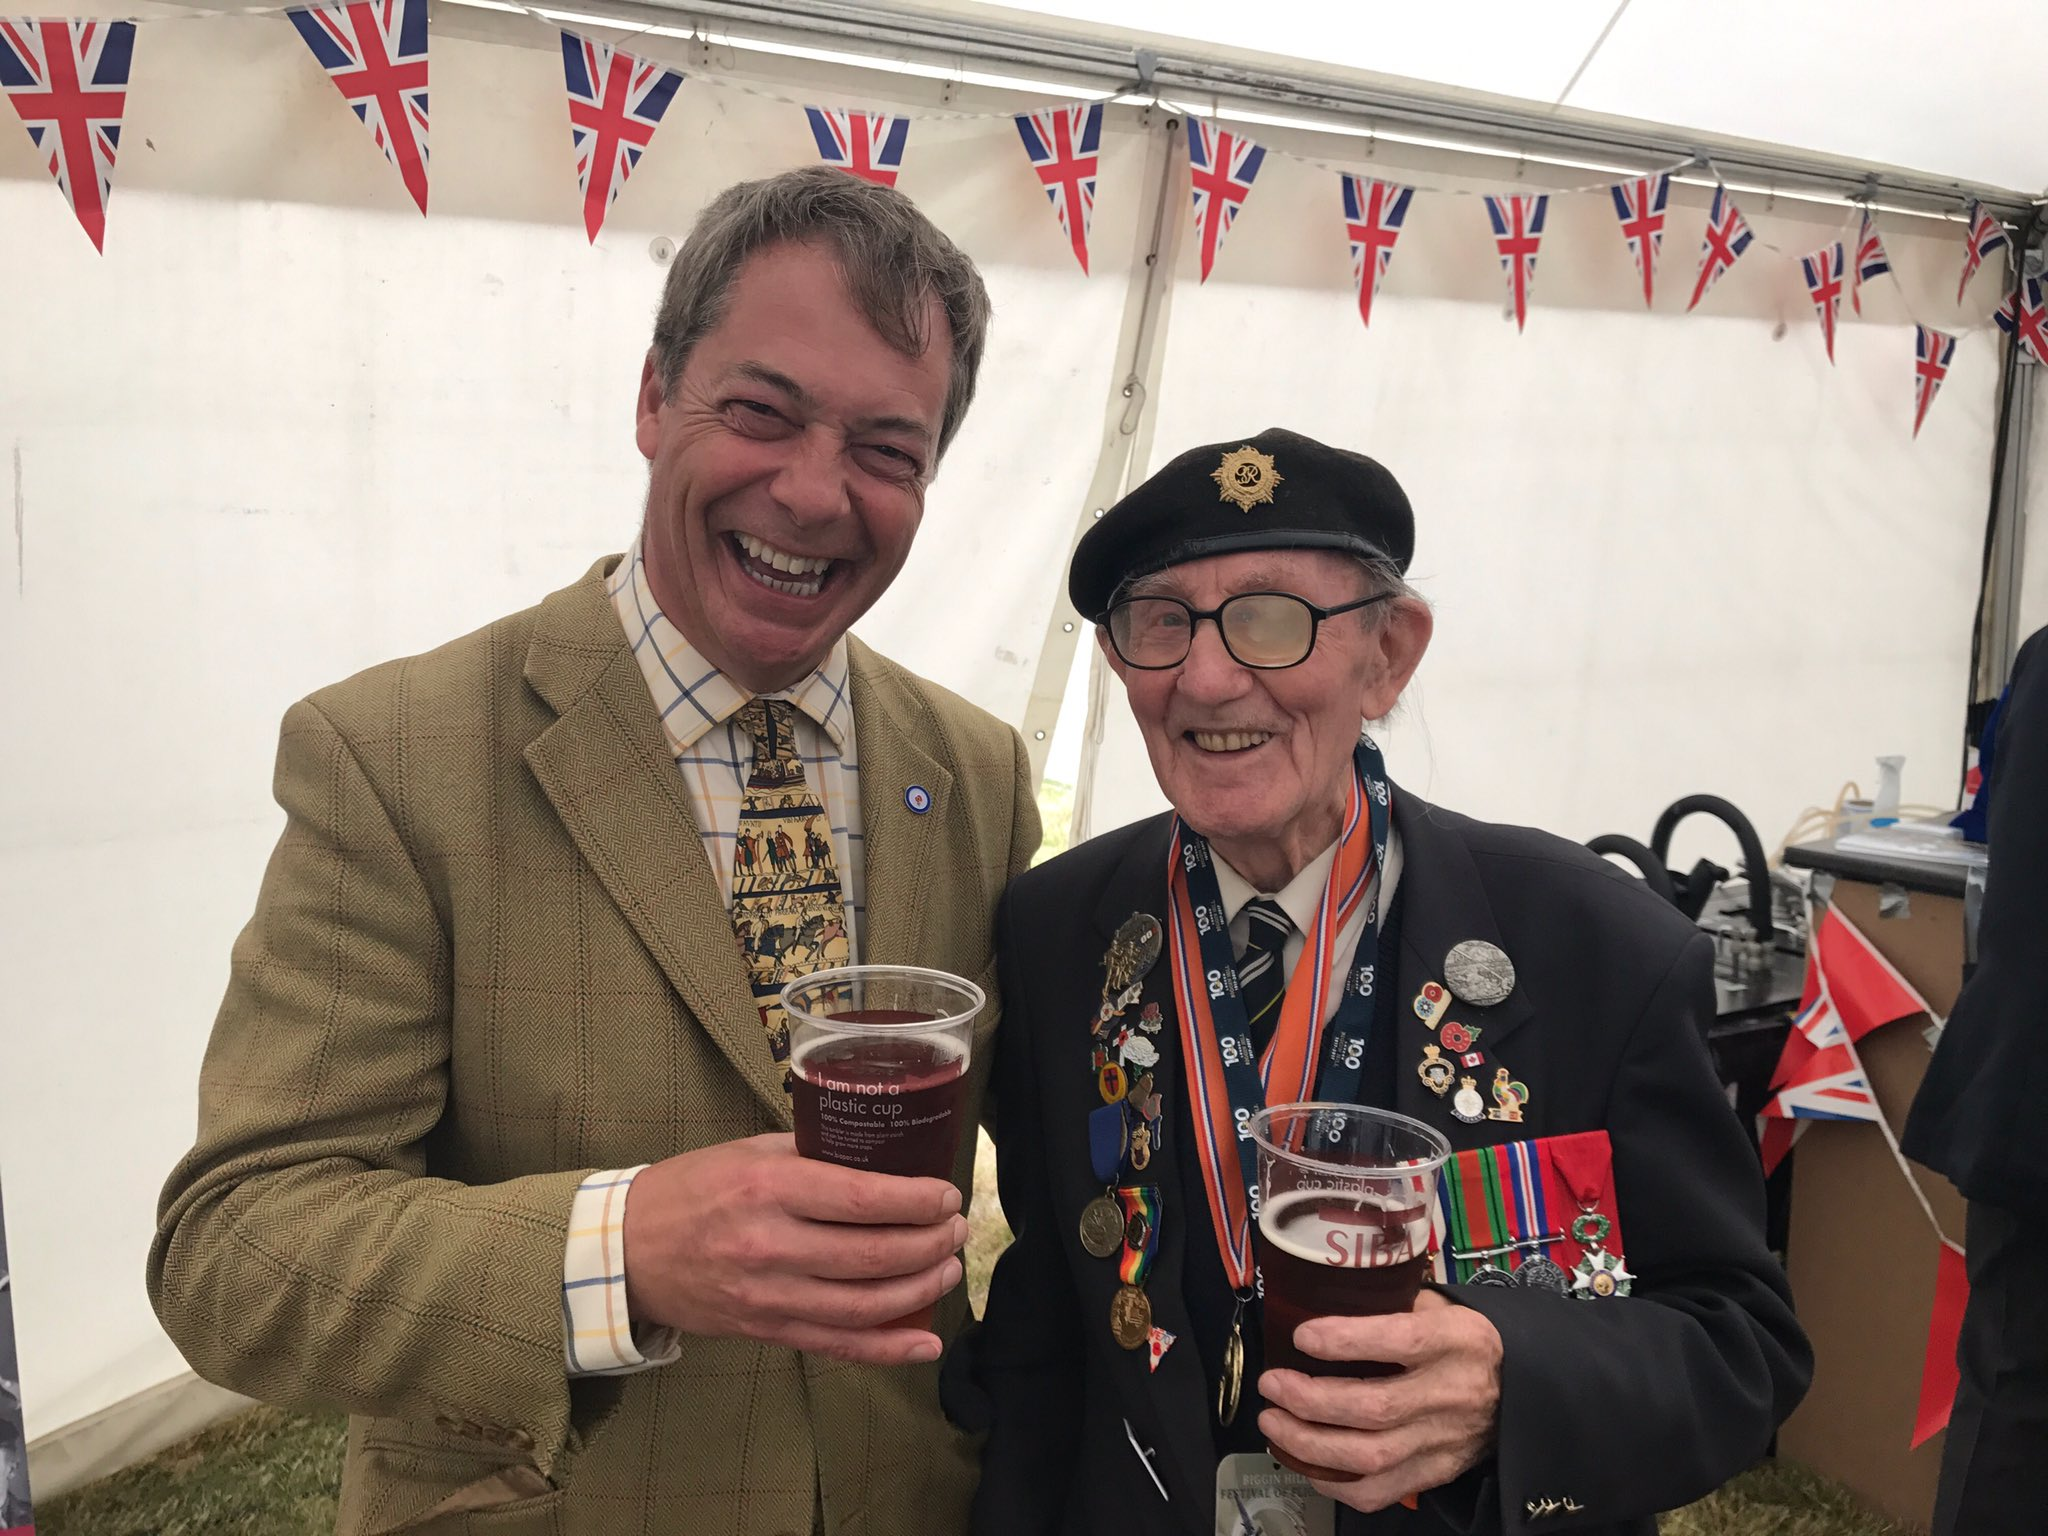 Enjoyed a sherbet with Harry again yesterday. He had a nice little runaround in Normandy in 1944. https://t.co/Elen6r5hU3